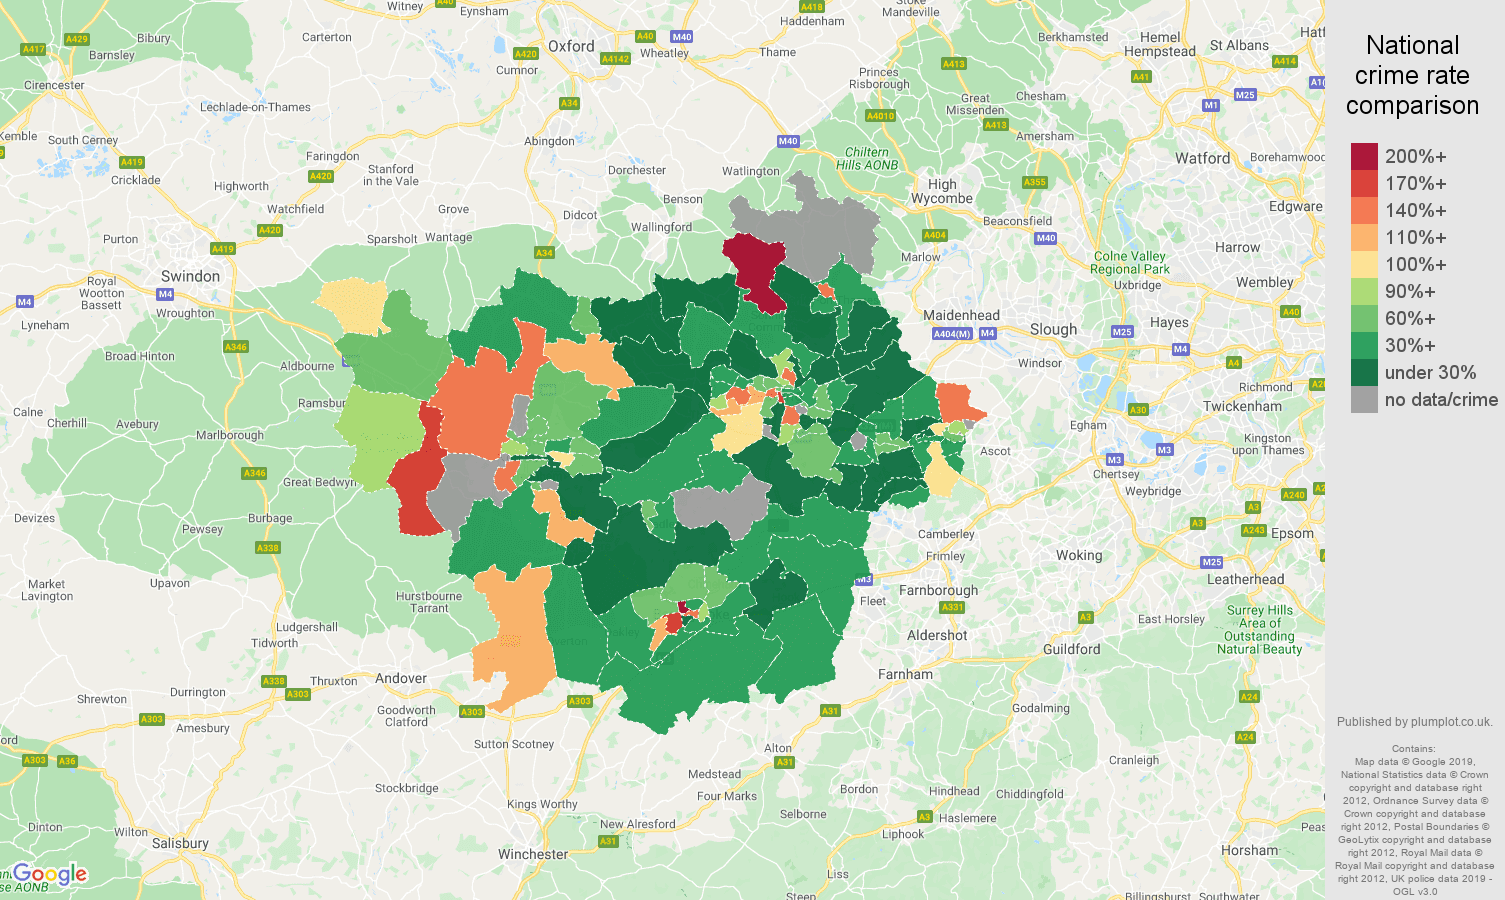 Reading other crime rate comparison map